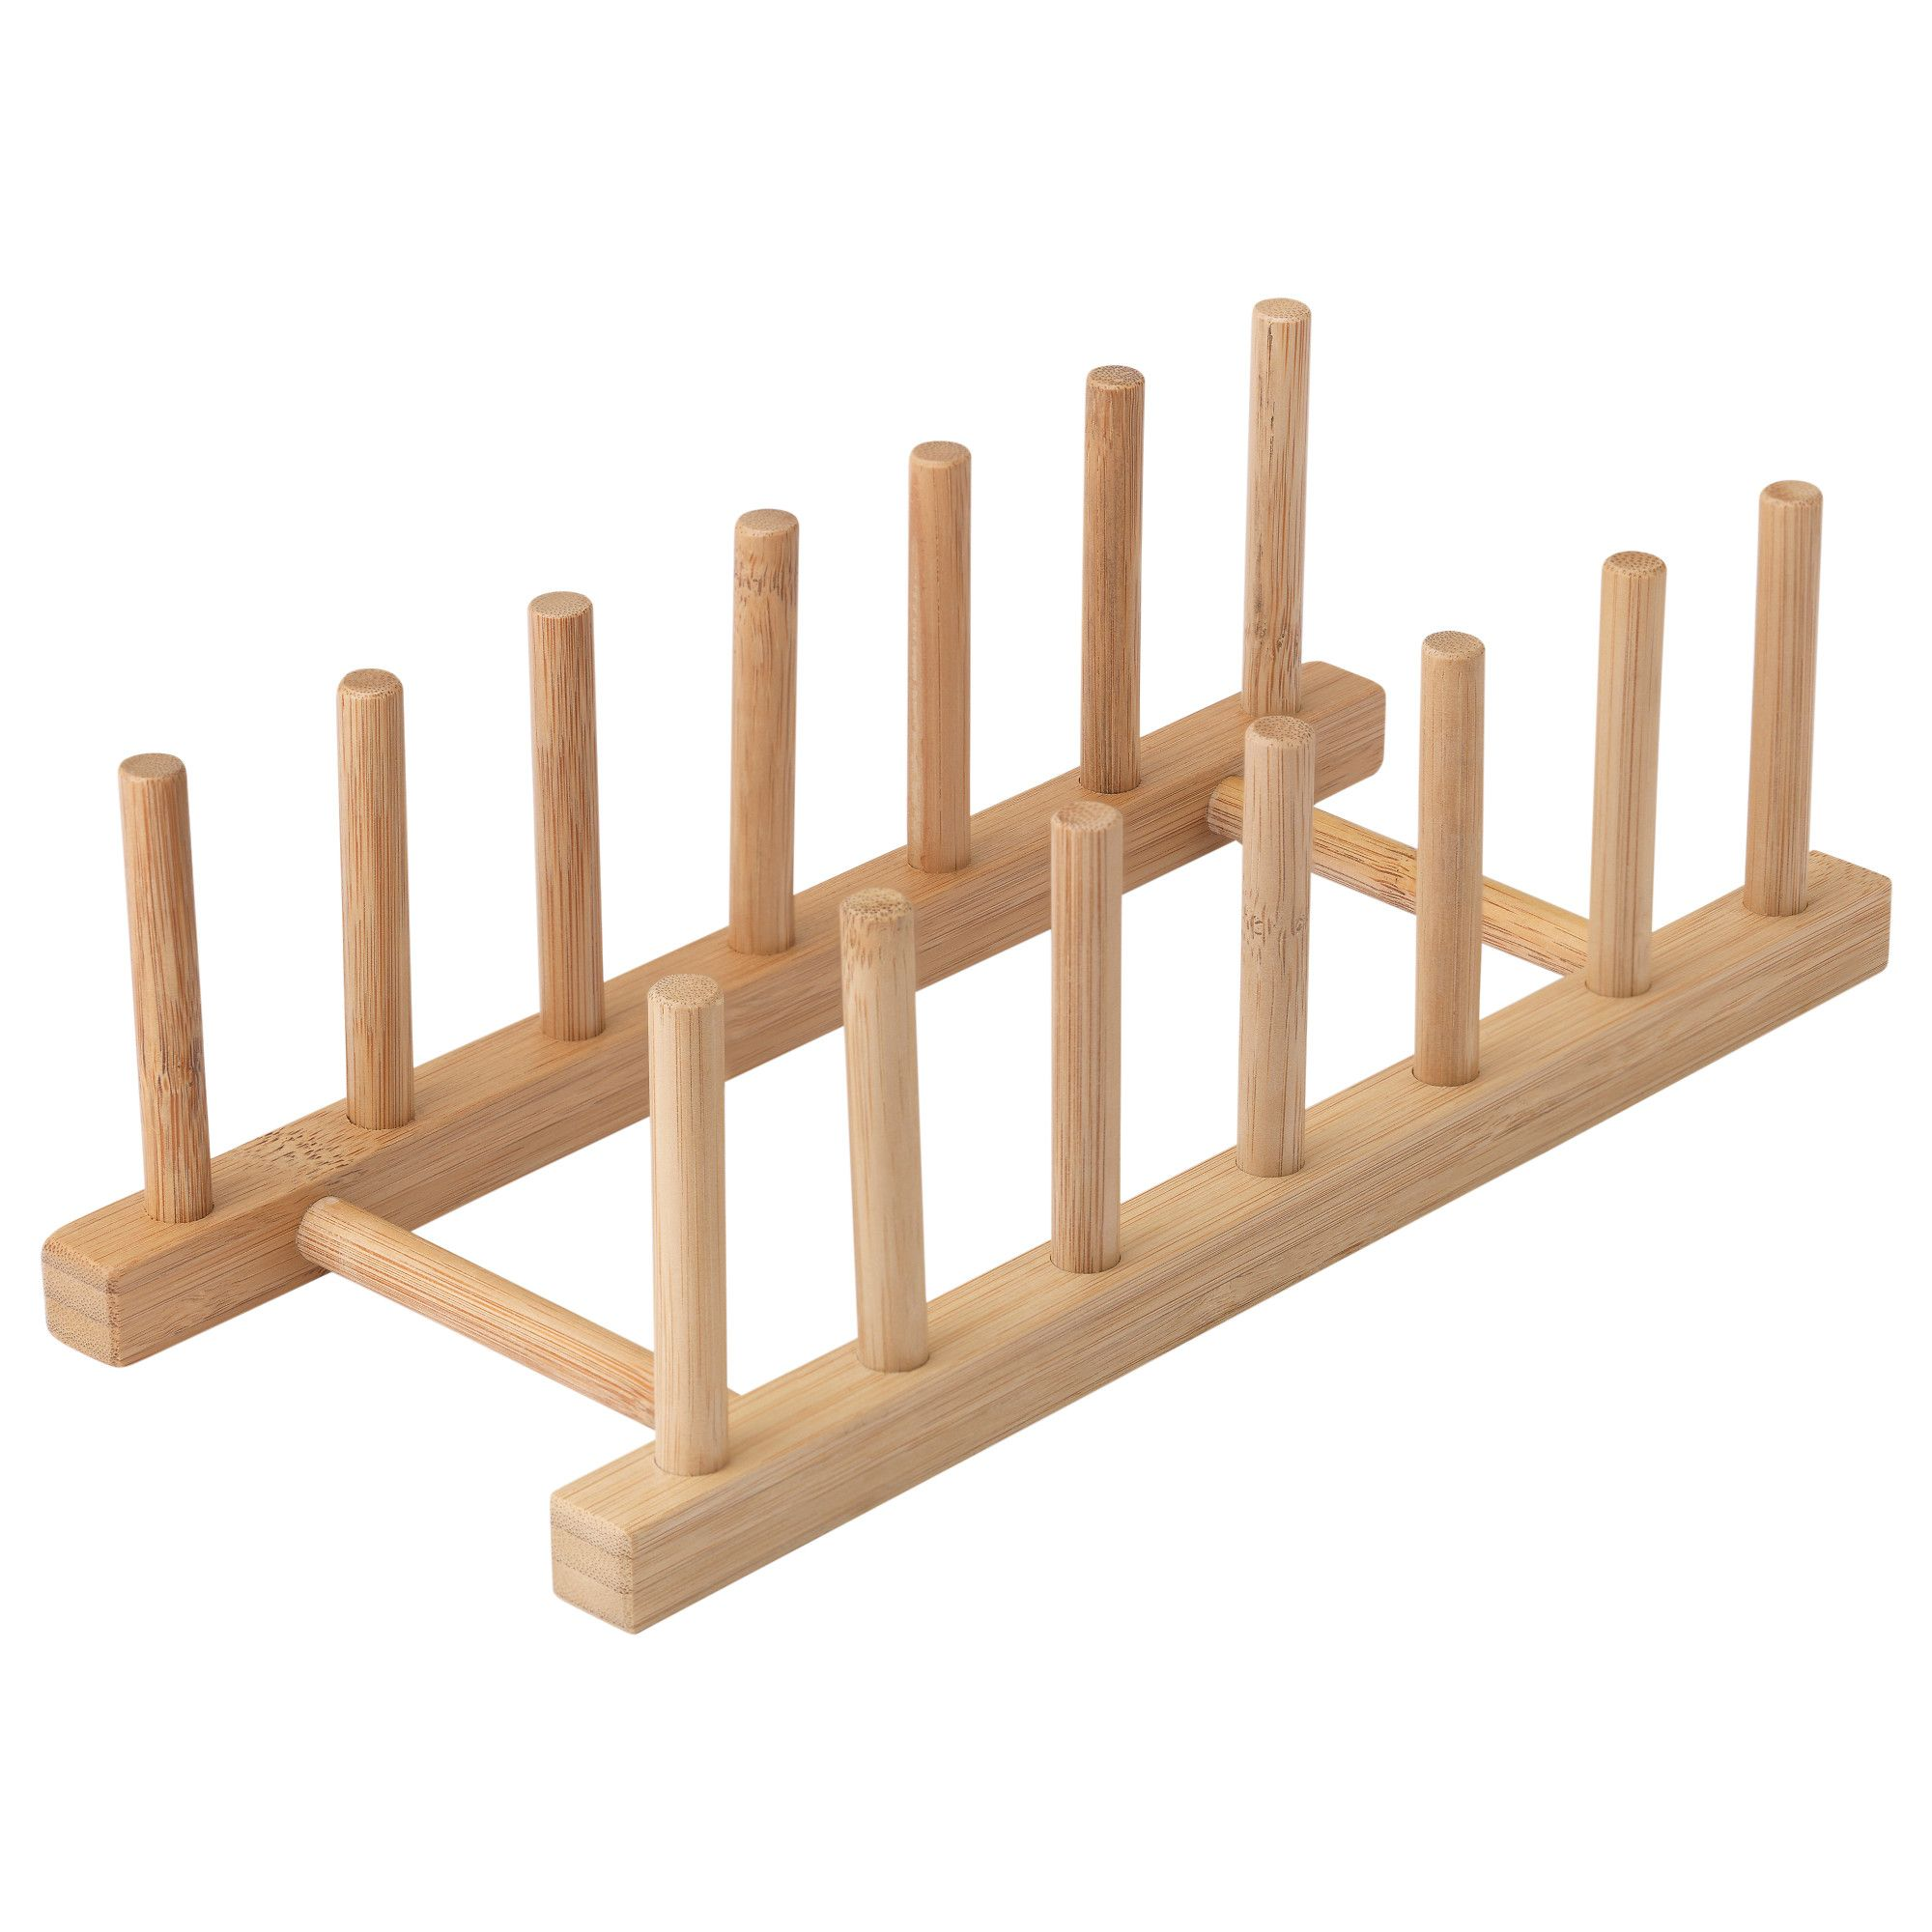 ikea bamboo plate rack- $2.99  sc 1 st  Pinterest & OSTBIT Plate holder bamboo | Plate racks Plate holder and Pantry